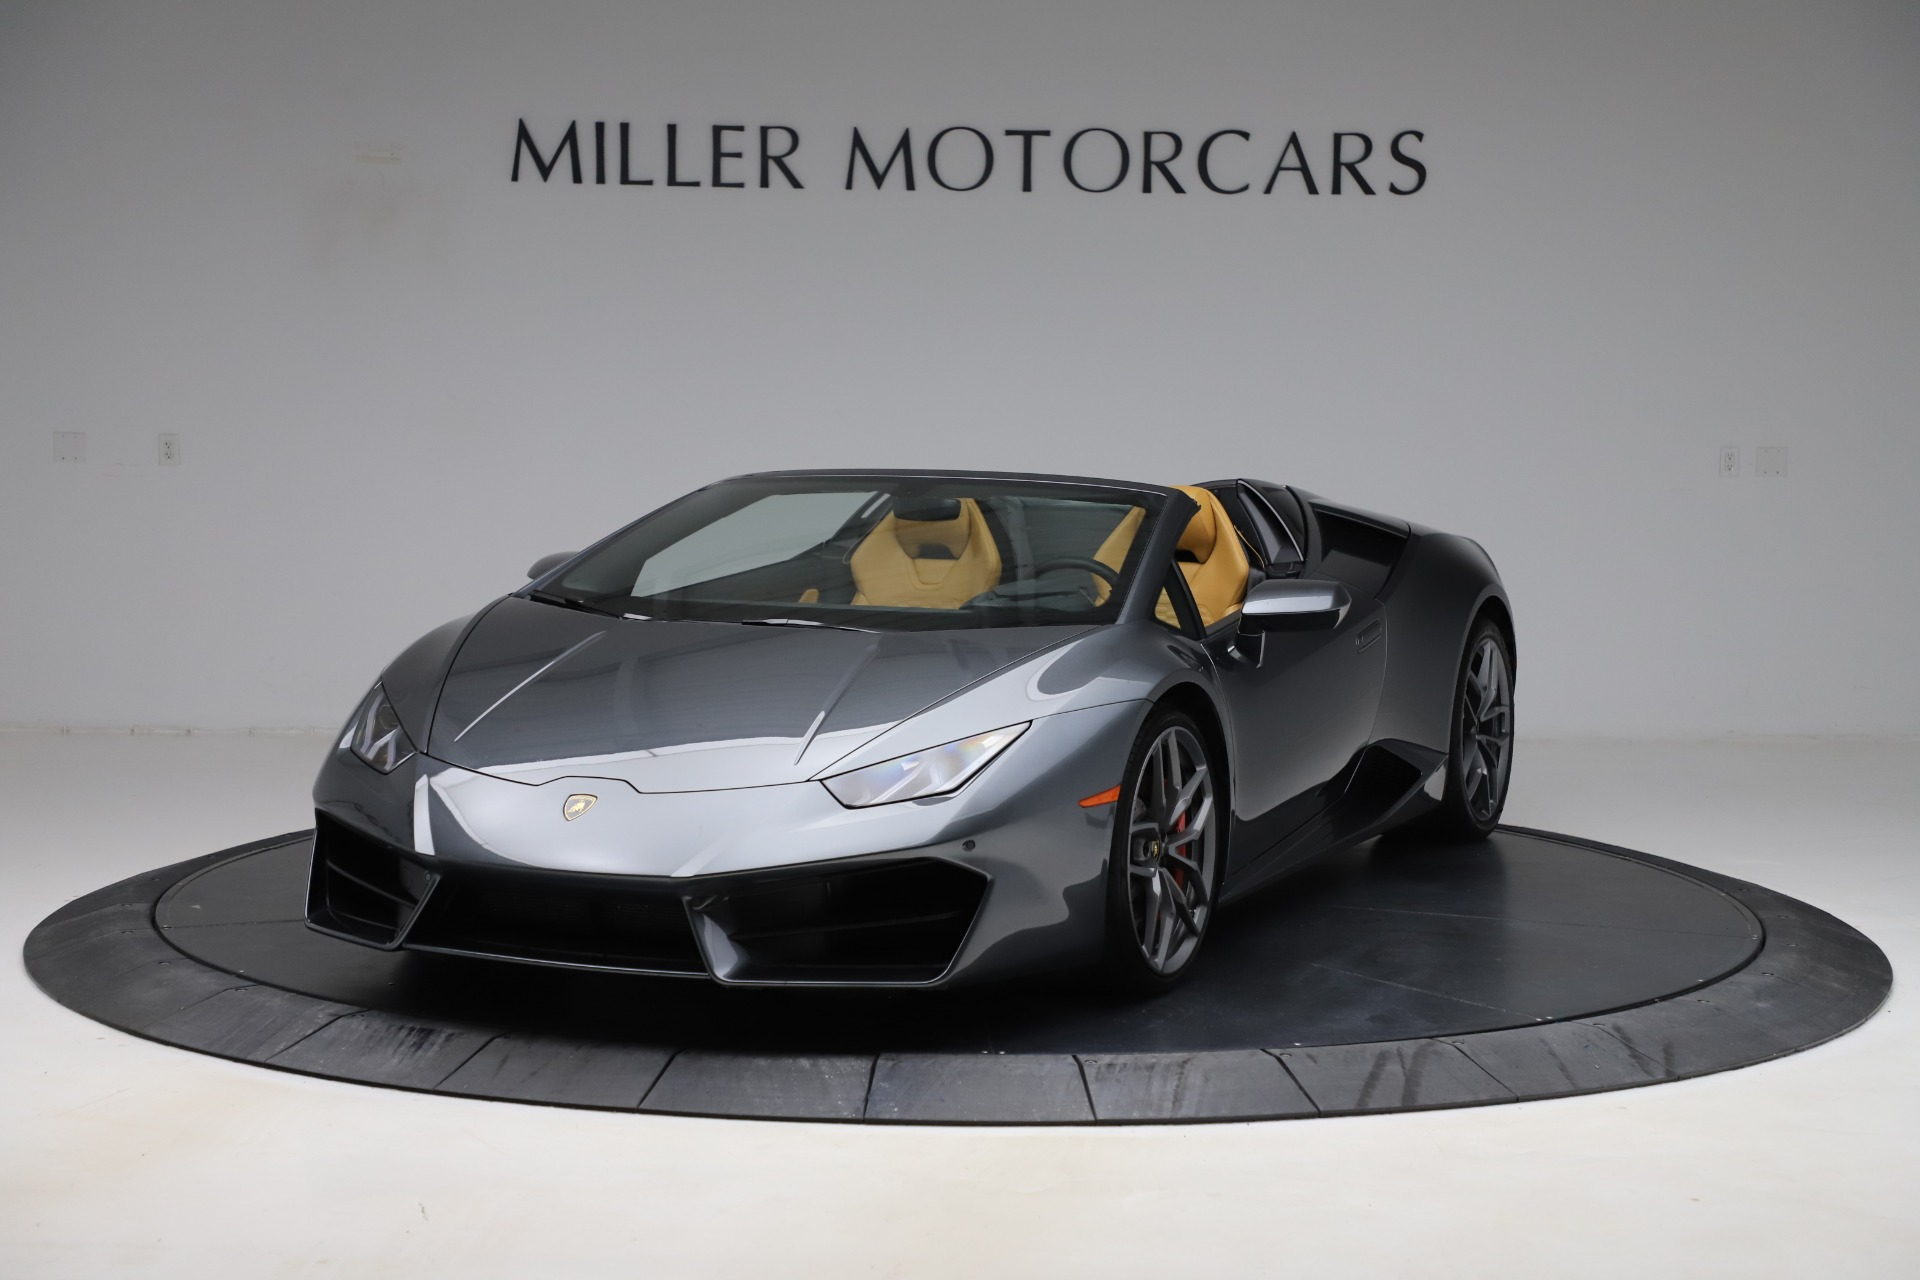 Used 2018 Lamborghini Huracan LP 580-2 Spyder for sale Sold at Aston Martin of Greenwich in Greenwich CT 06830 1